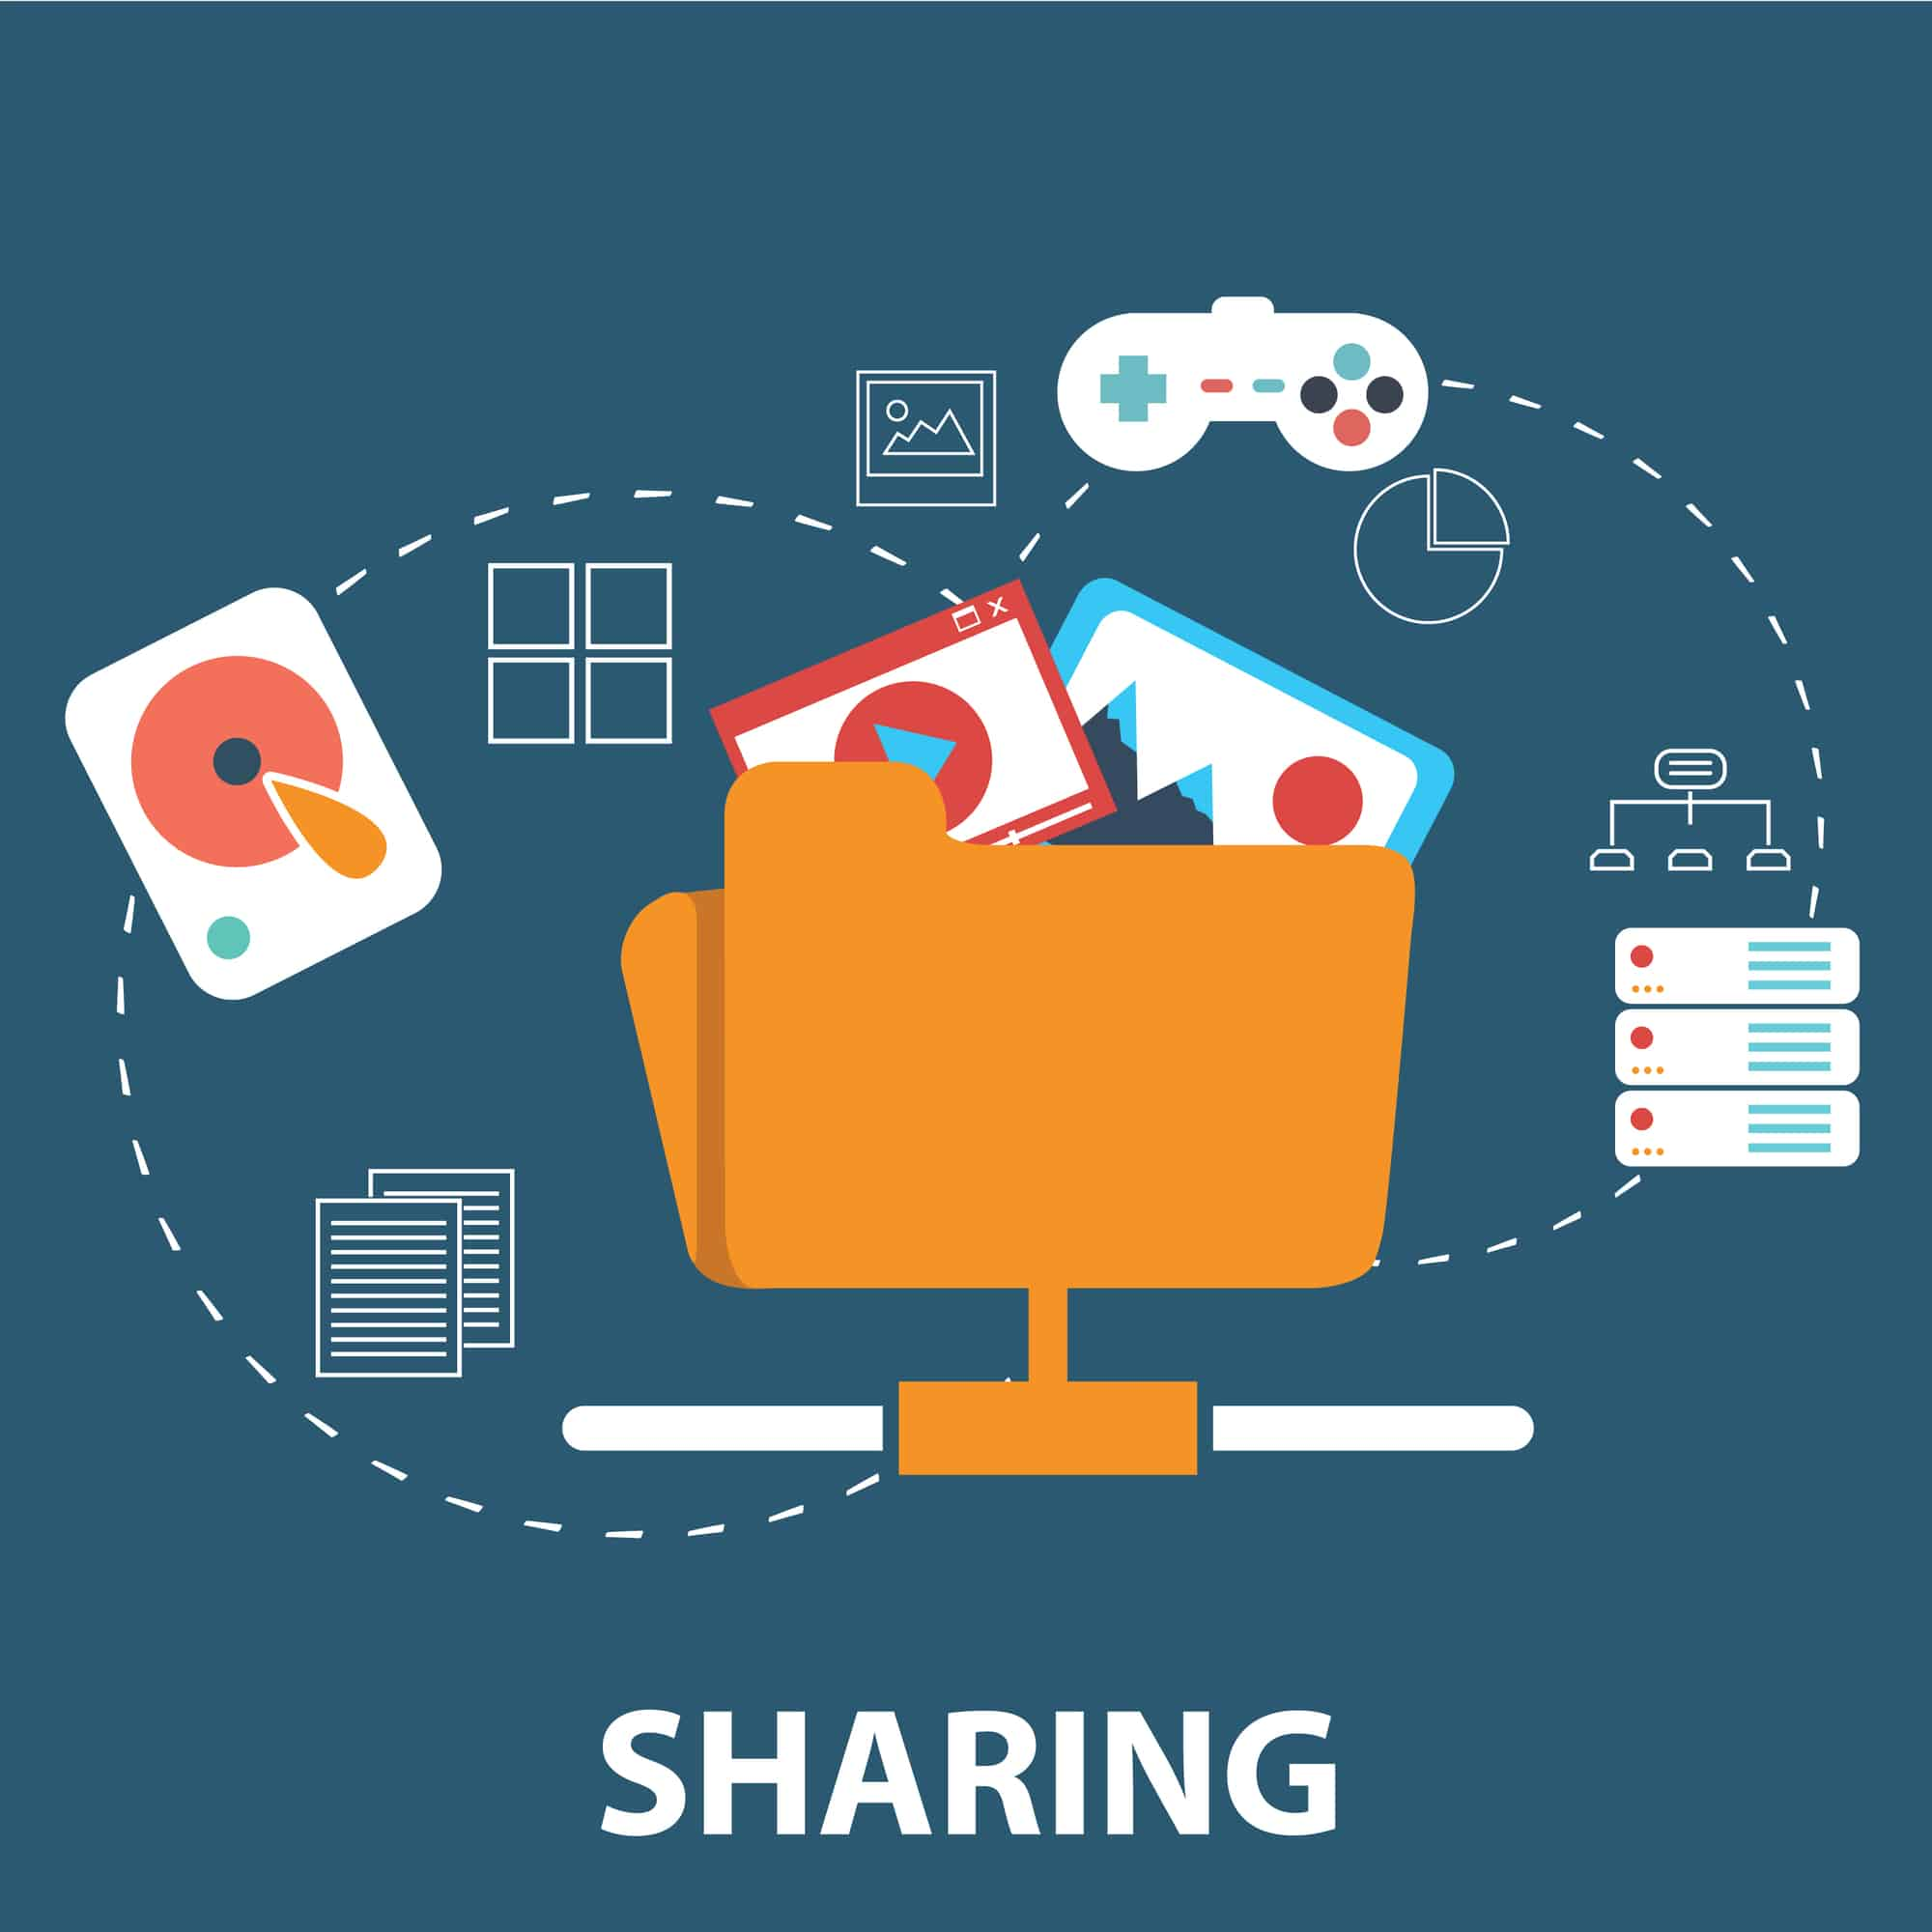 HIPAA Compliance for File Sharing in 2021